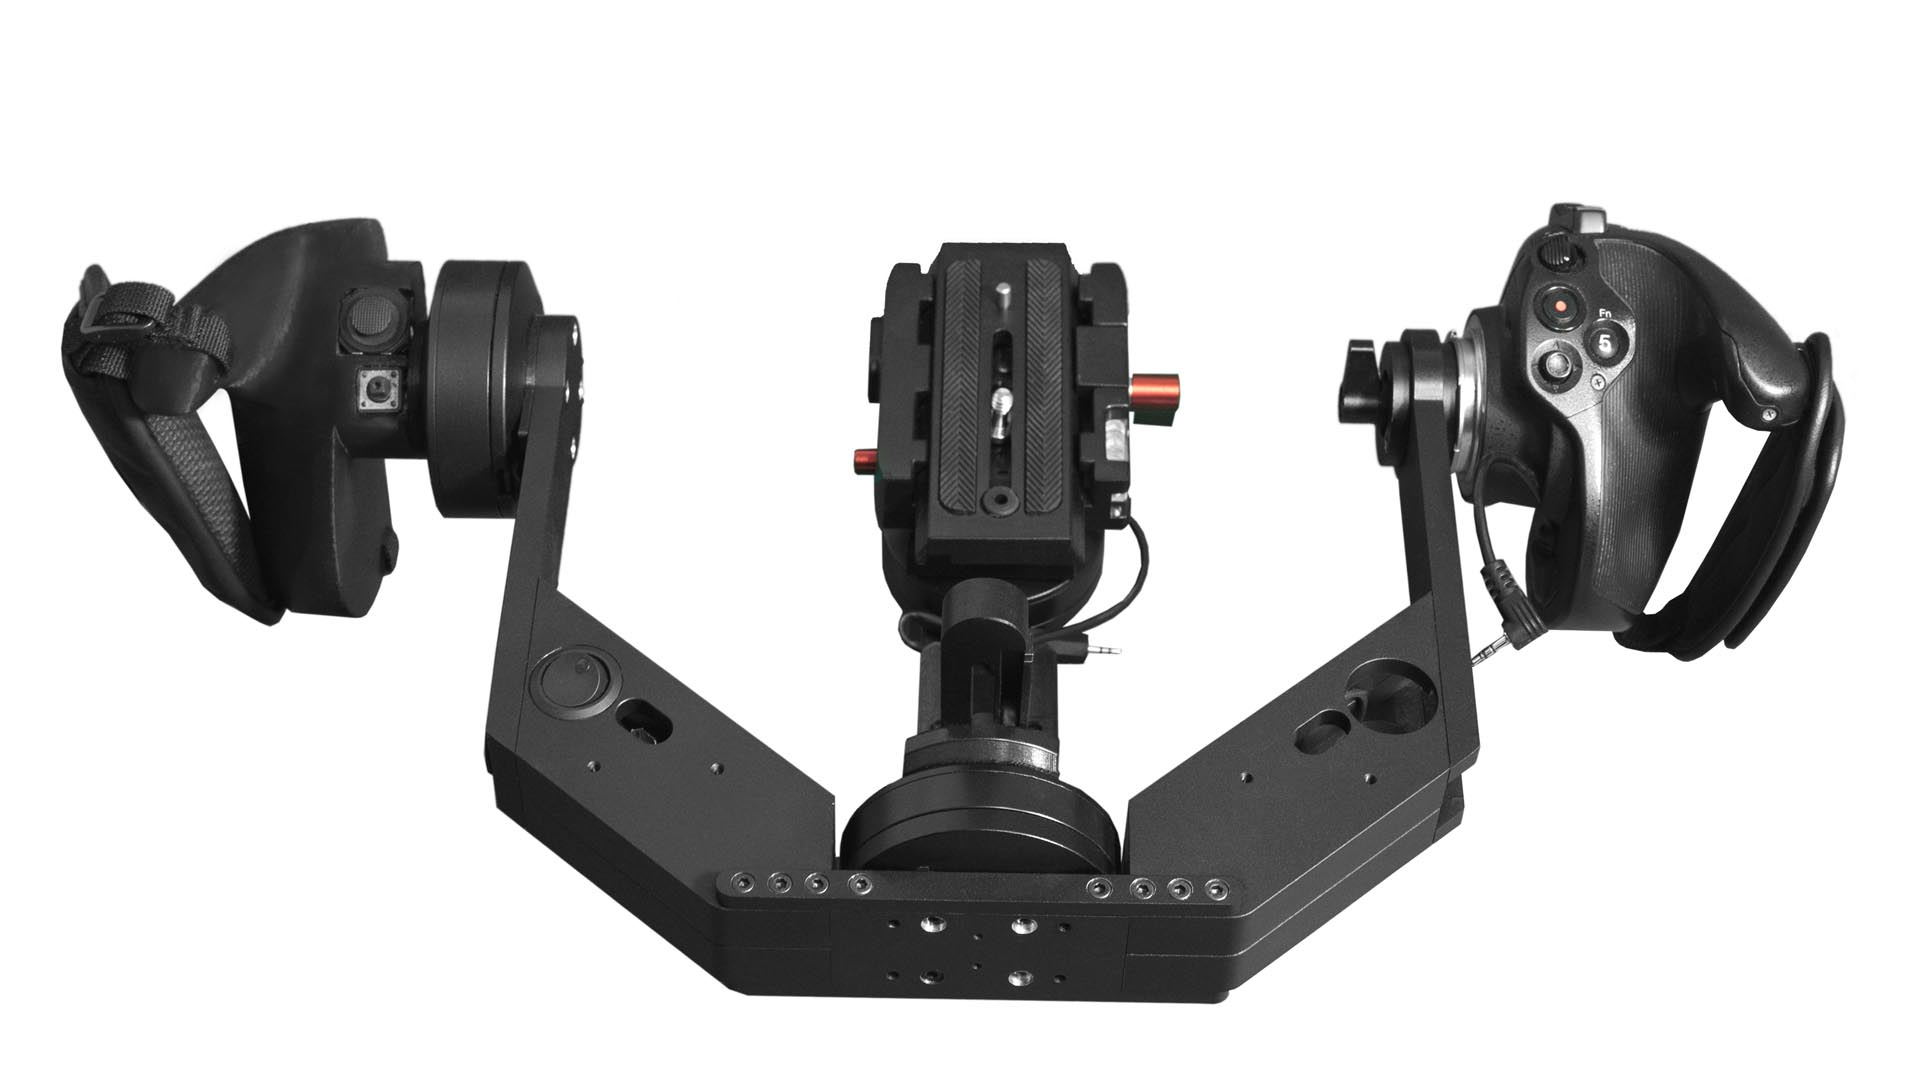 icecam gimbal tiny super 35 2